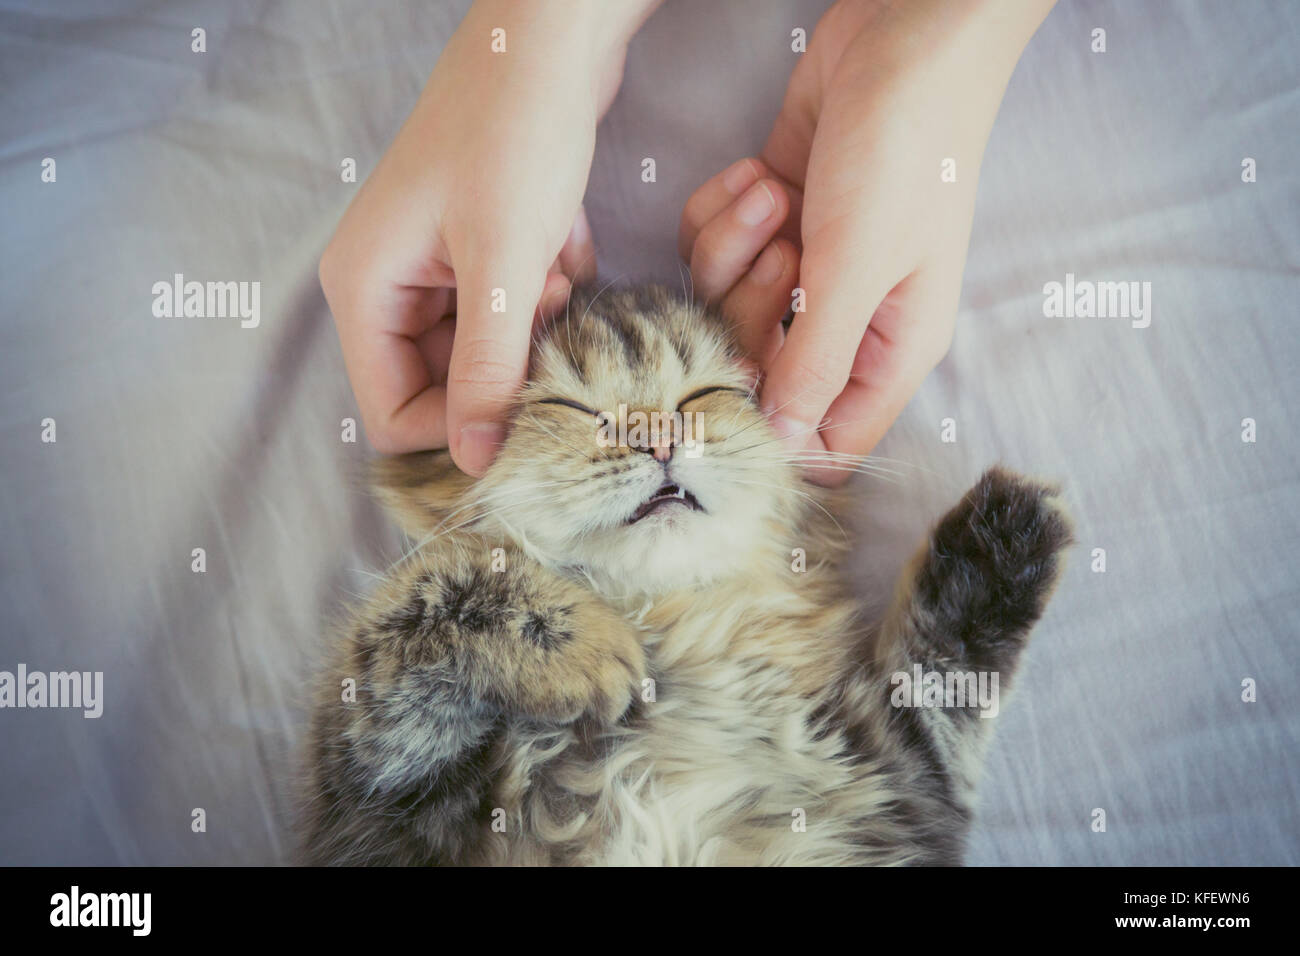 woman hand petting or massage a Persian kitty cat head, love to animals. vintage photo and film style. - Stock Image